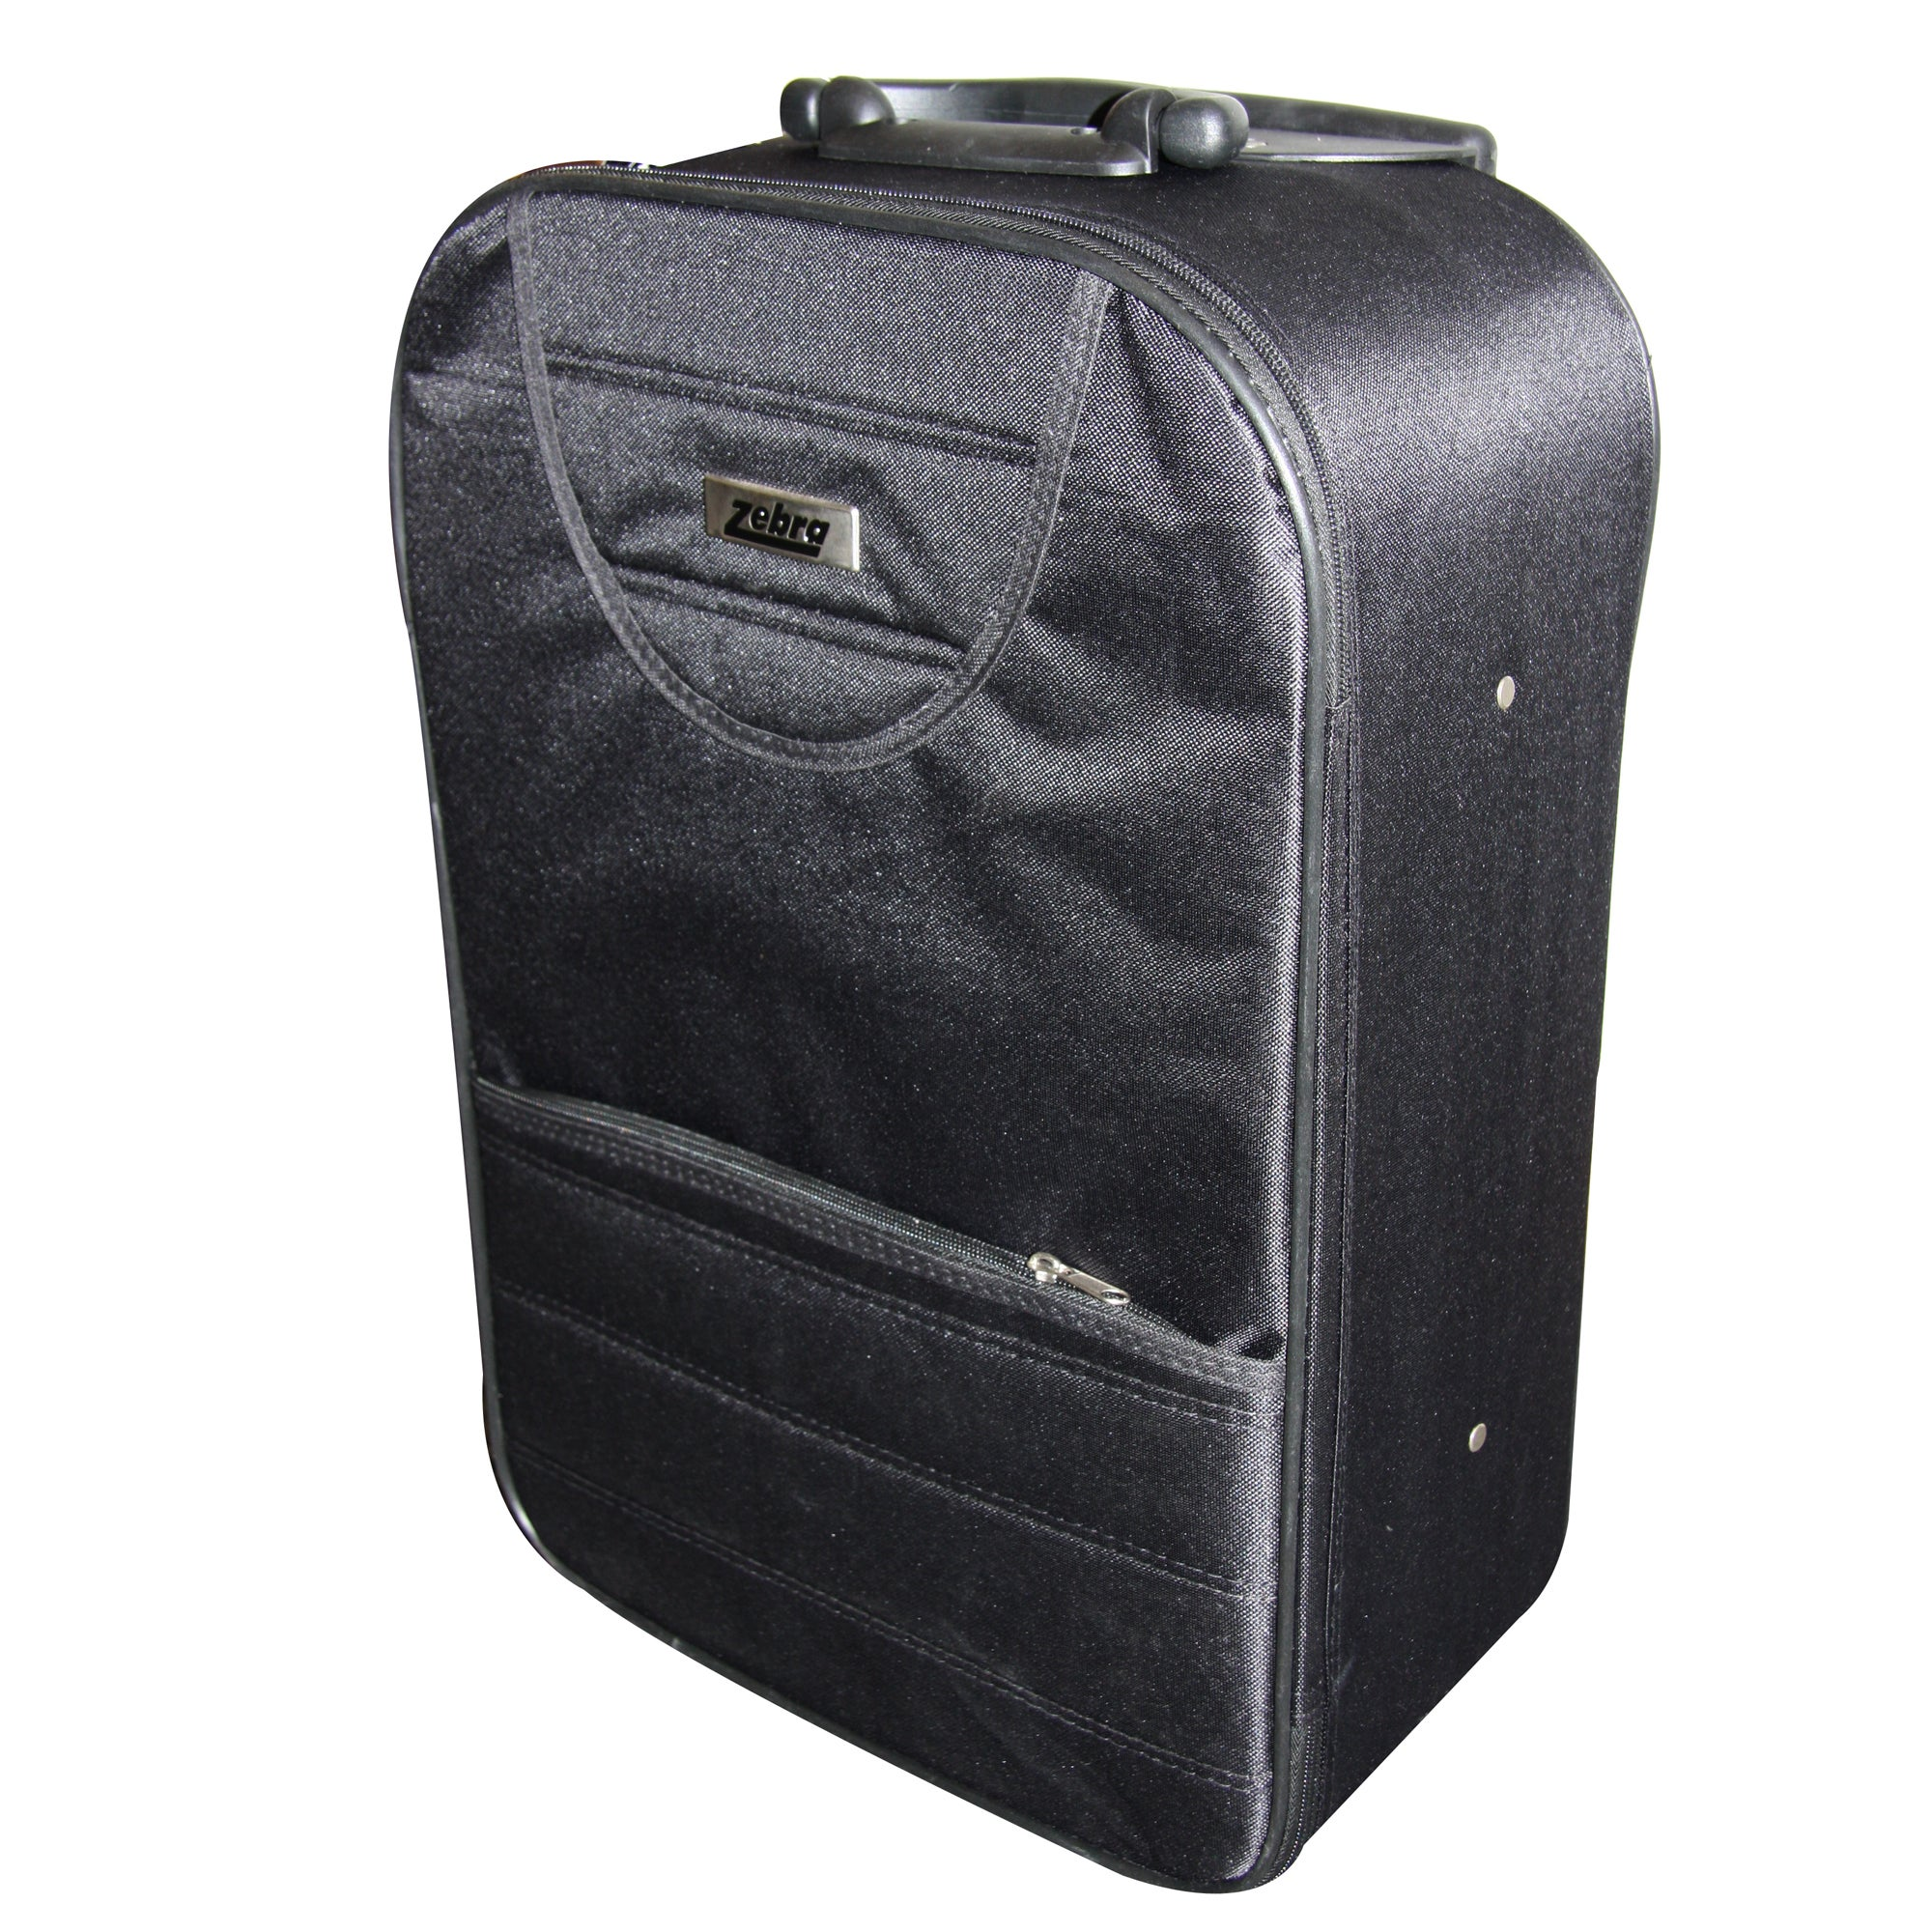 Black Zebra 20 Inch Weekend Suitcase